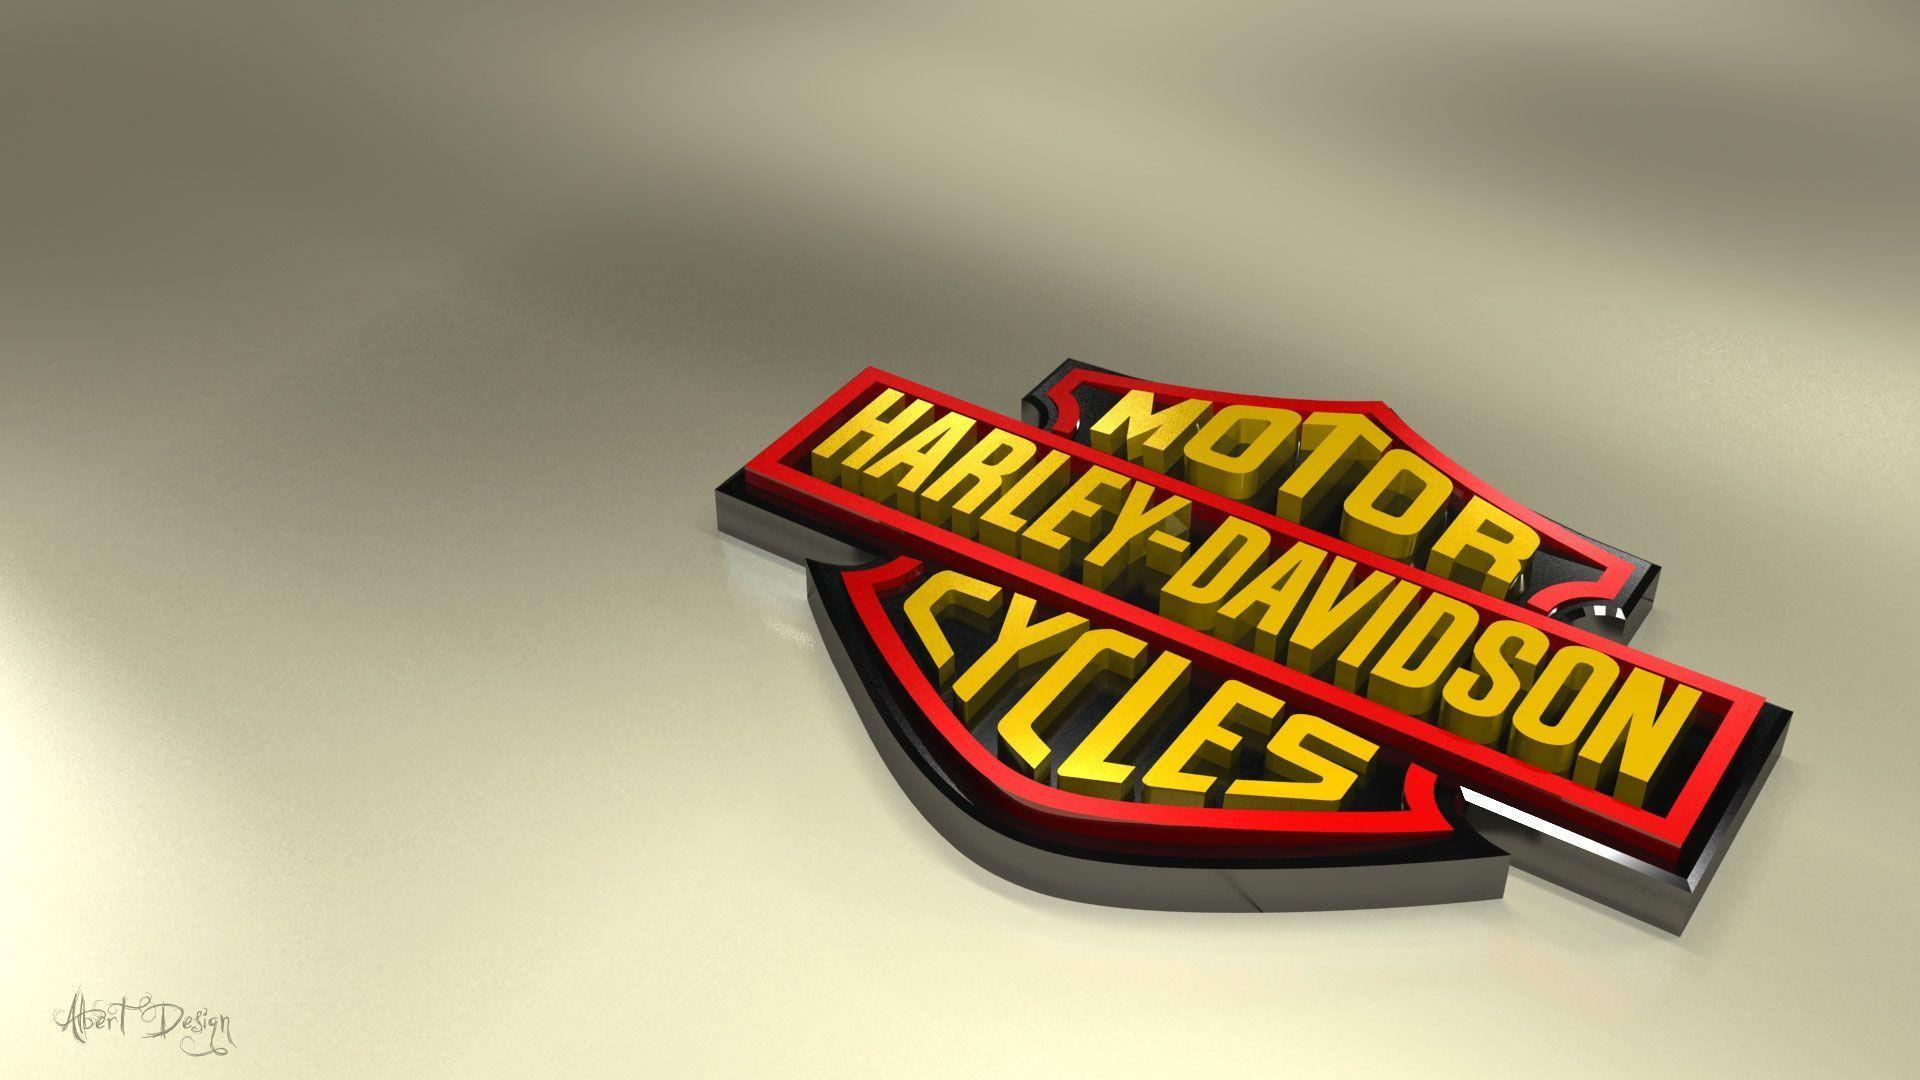 Harley davidson 3d wallpapers wallpaper cave free wallpapers harley davidson 3d logo wallpaper voltagebd Images